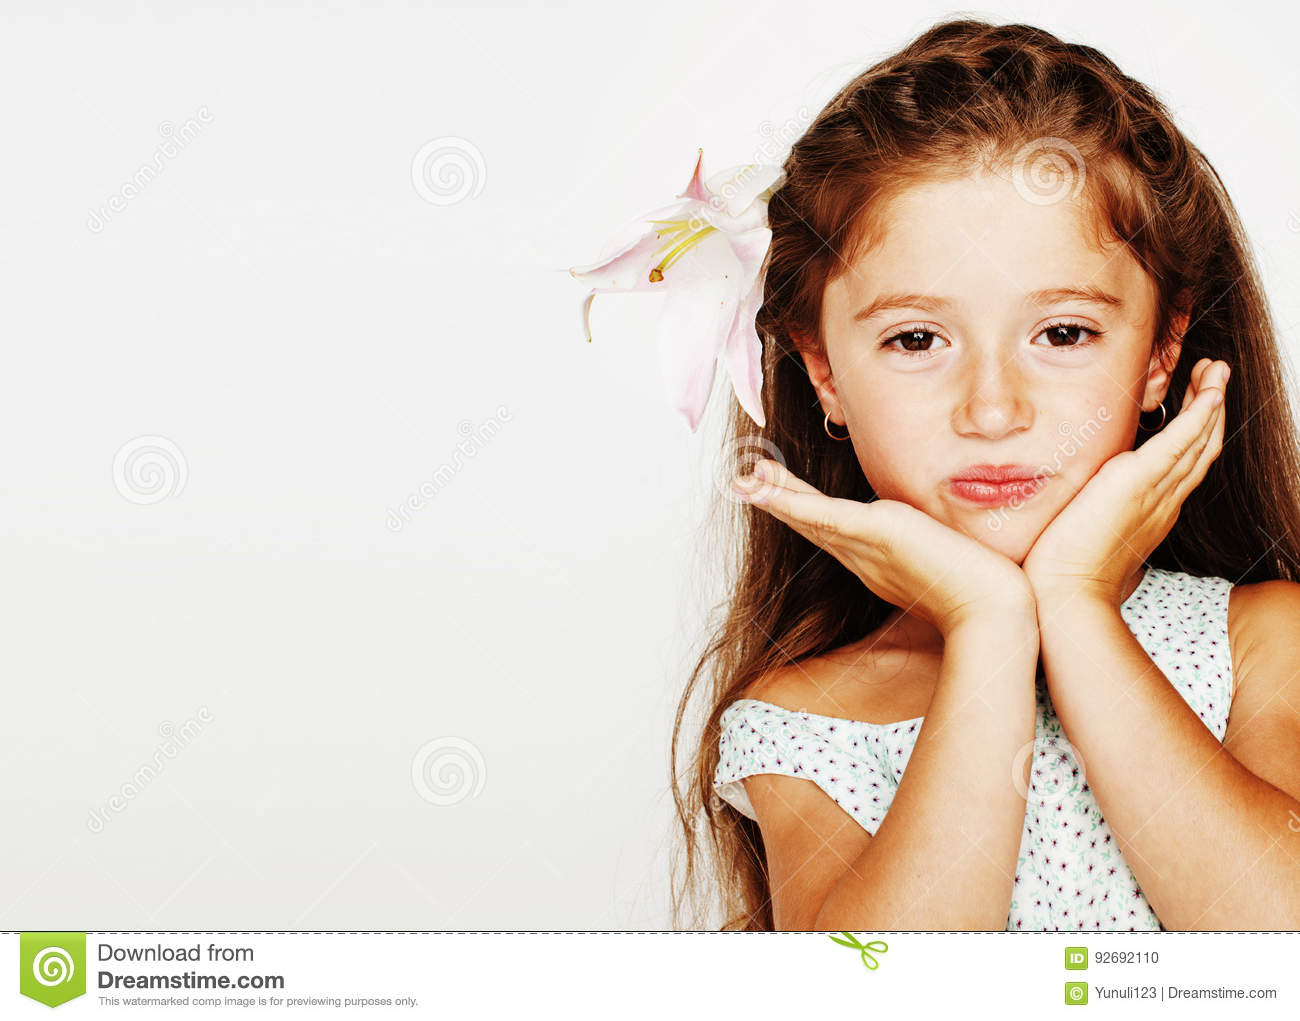 Little cute spring girl in fancy dress isolated on white background, fashion stylish kid, lifestyle people concept